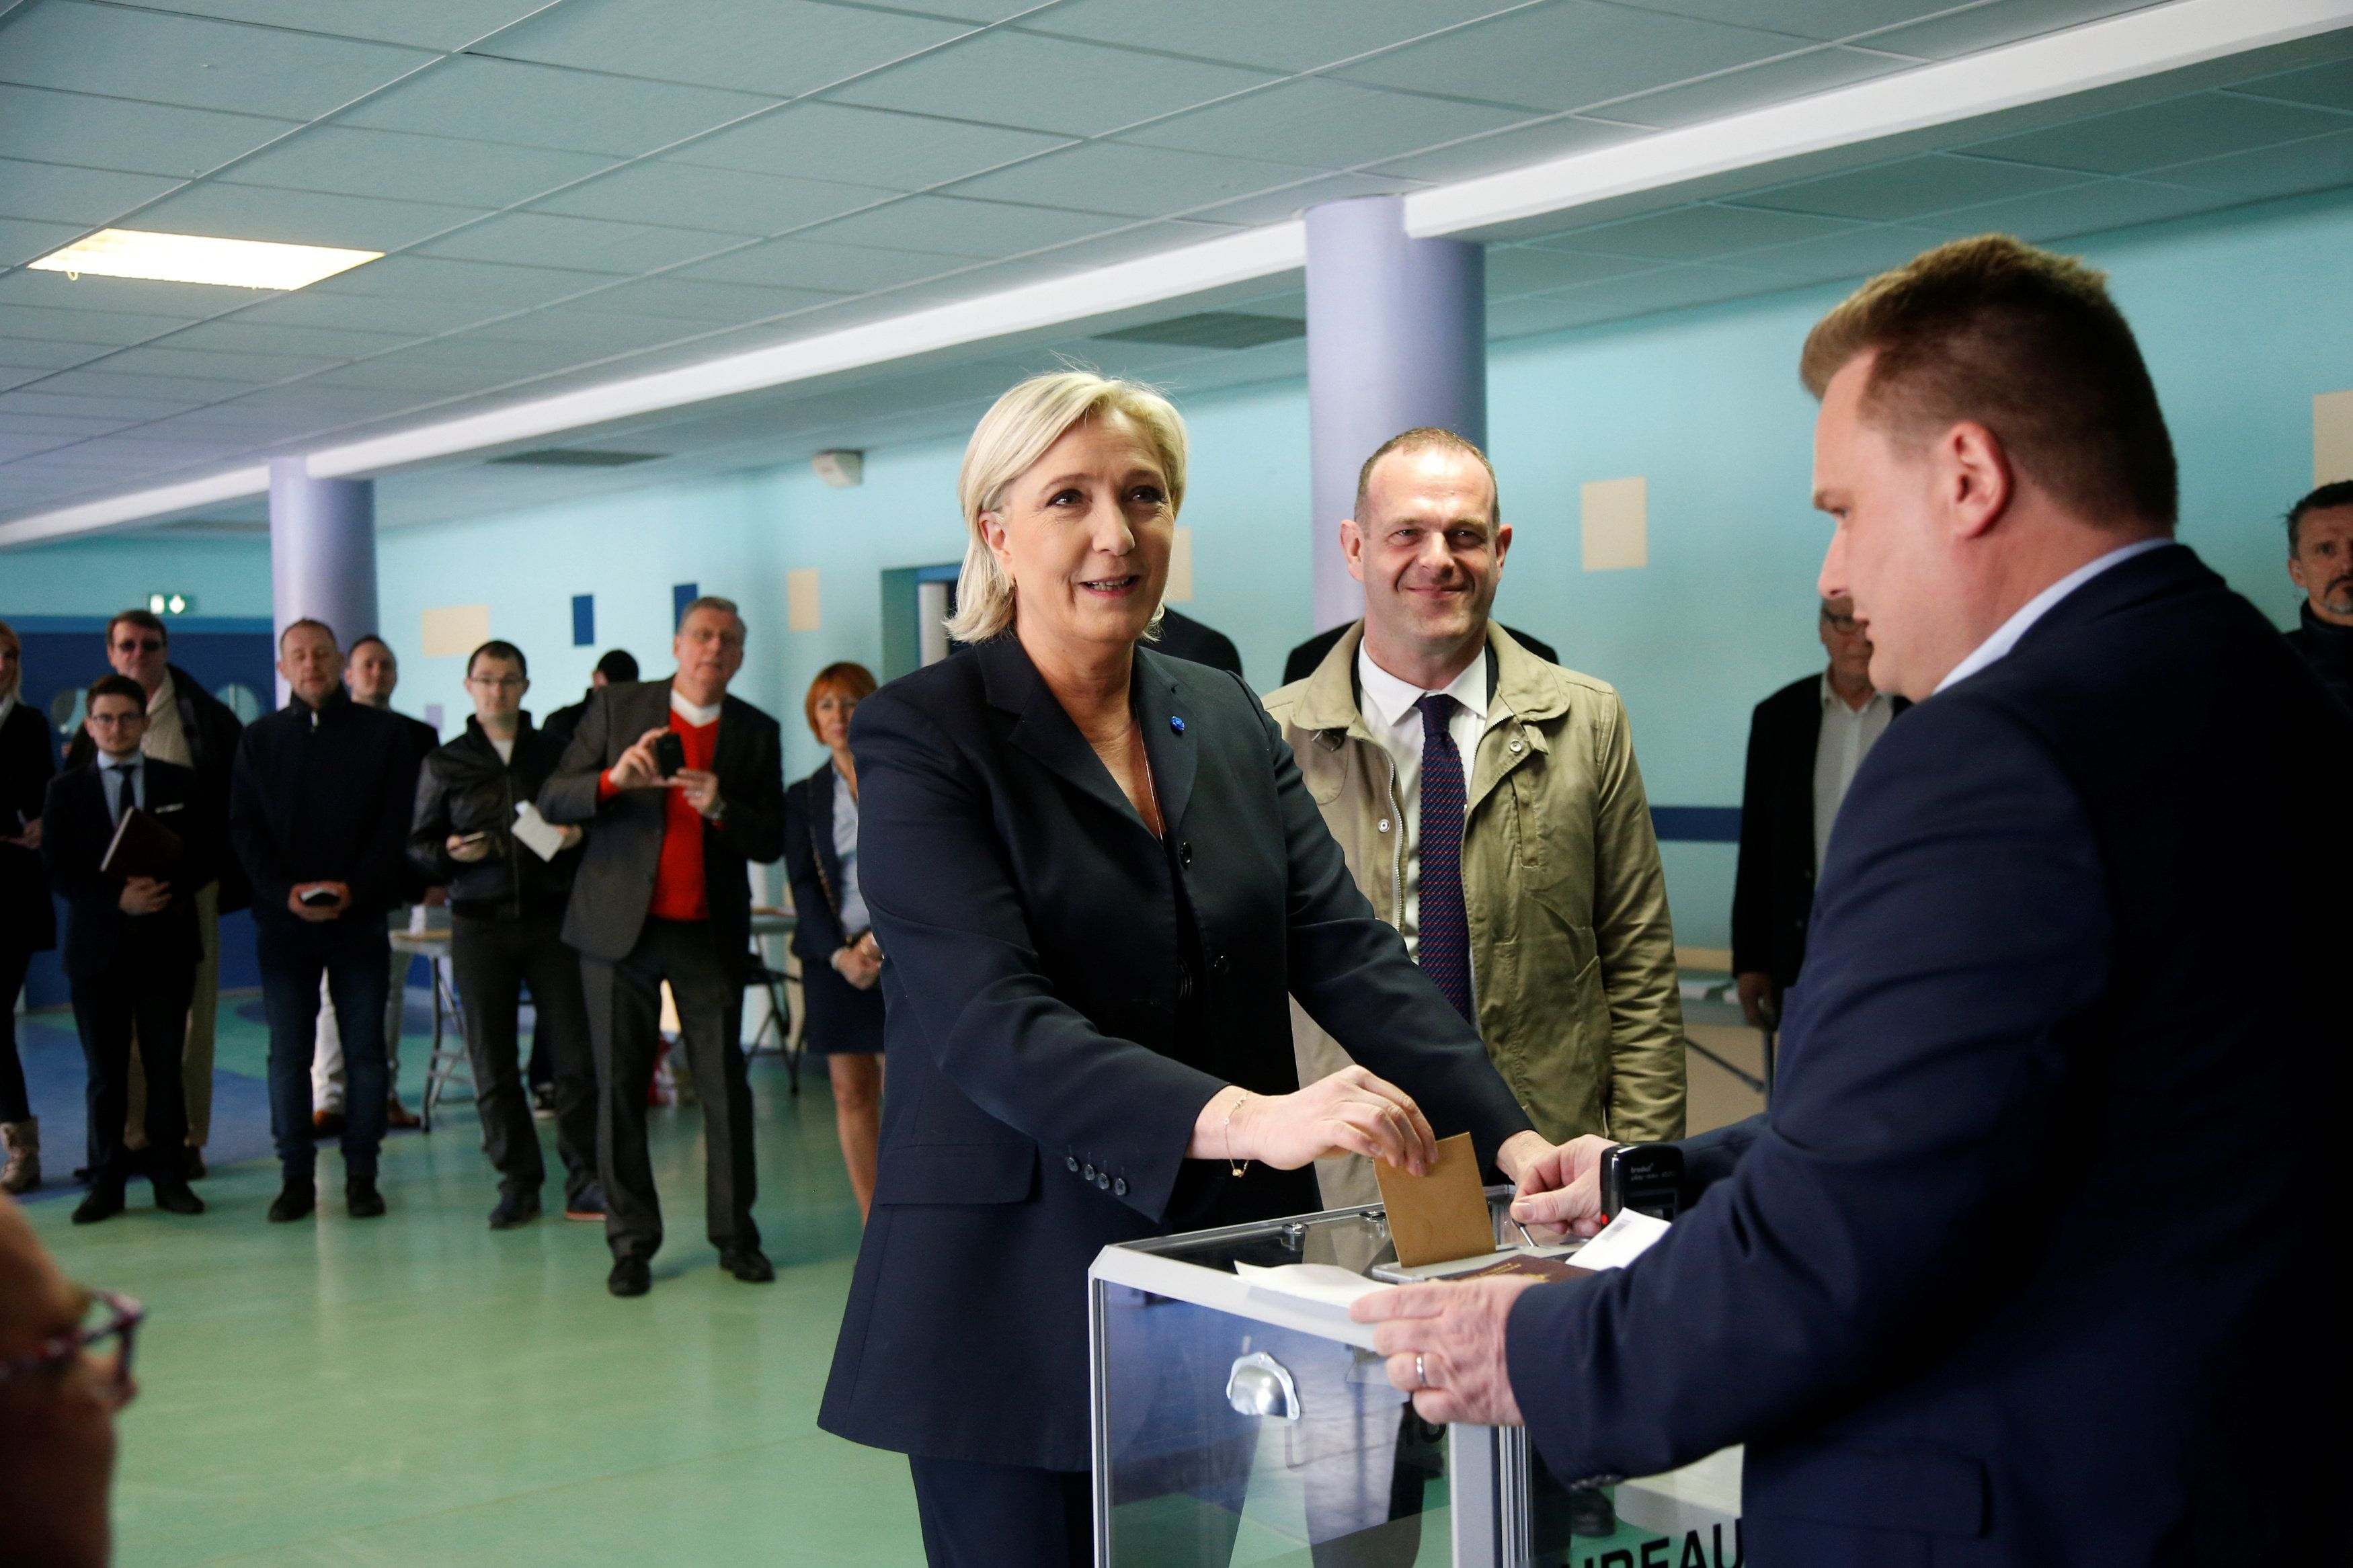 Marine Le Pen (C), French National Front (FN) political party leader and candidate for French 2017 presidential election, casts her ballot in the first round of 2017 French presidential election at a polling station in Henin-Beaumont, northern France, April 23, 2017. At R, Mayor of Henin-Beaumont Steeve Briois REUTERS/Charles Platiau